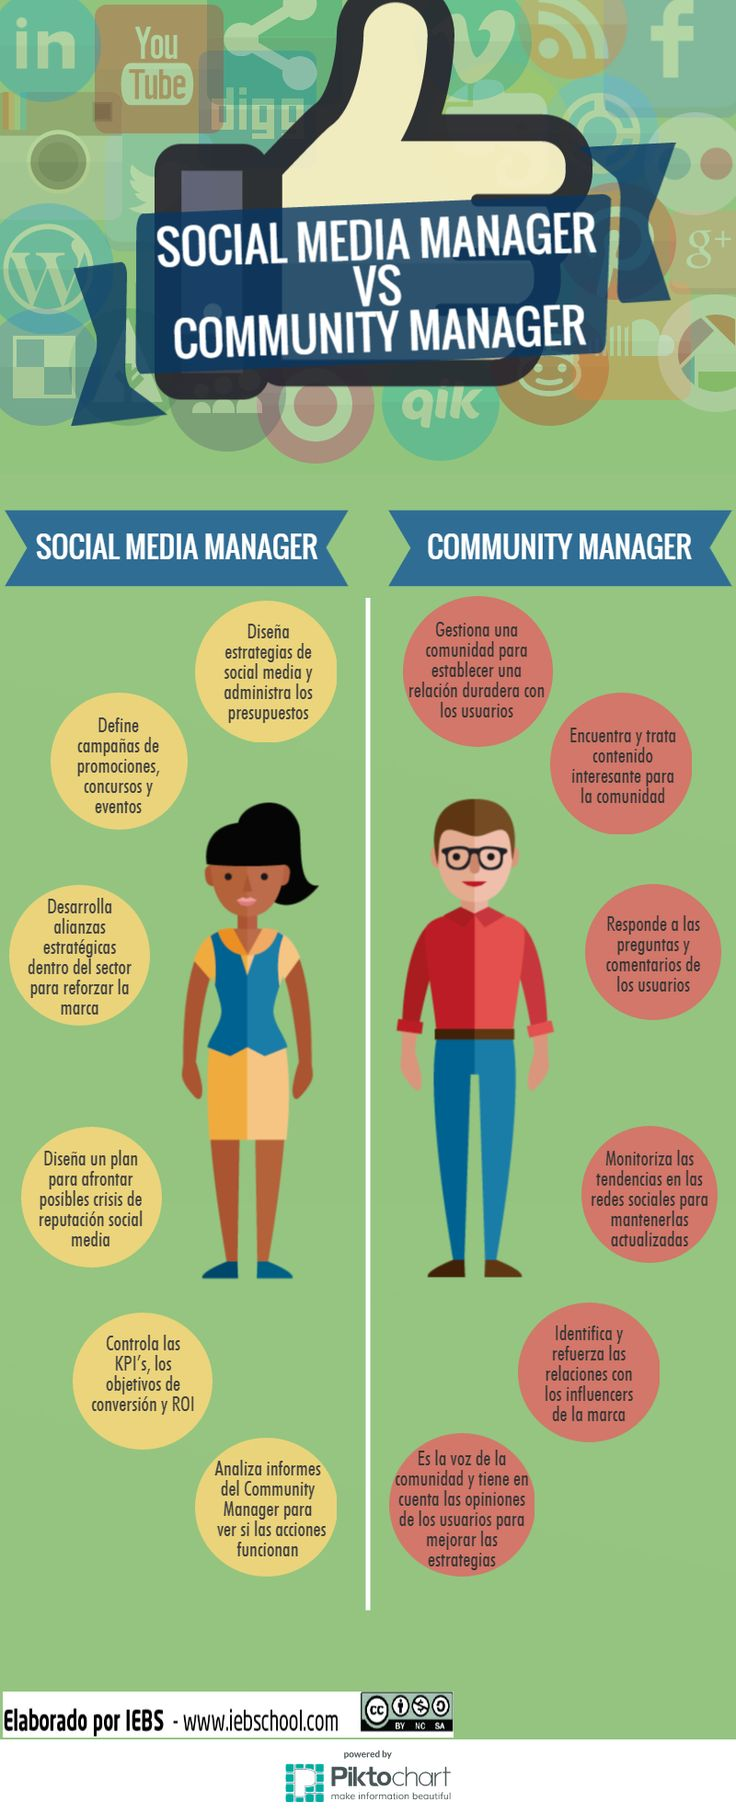 Social Media Manager vs Community Manager #infografia #infographic #socialmedia